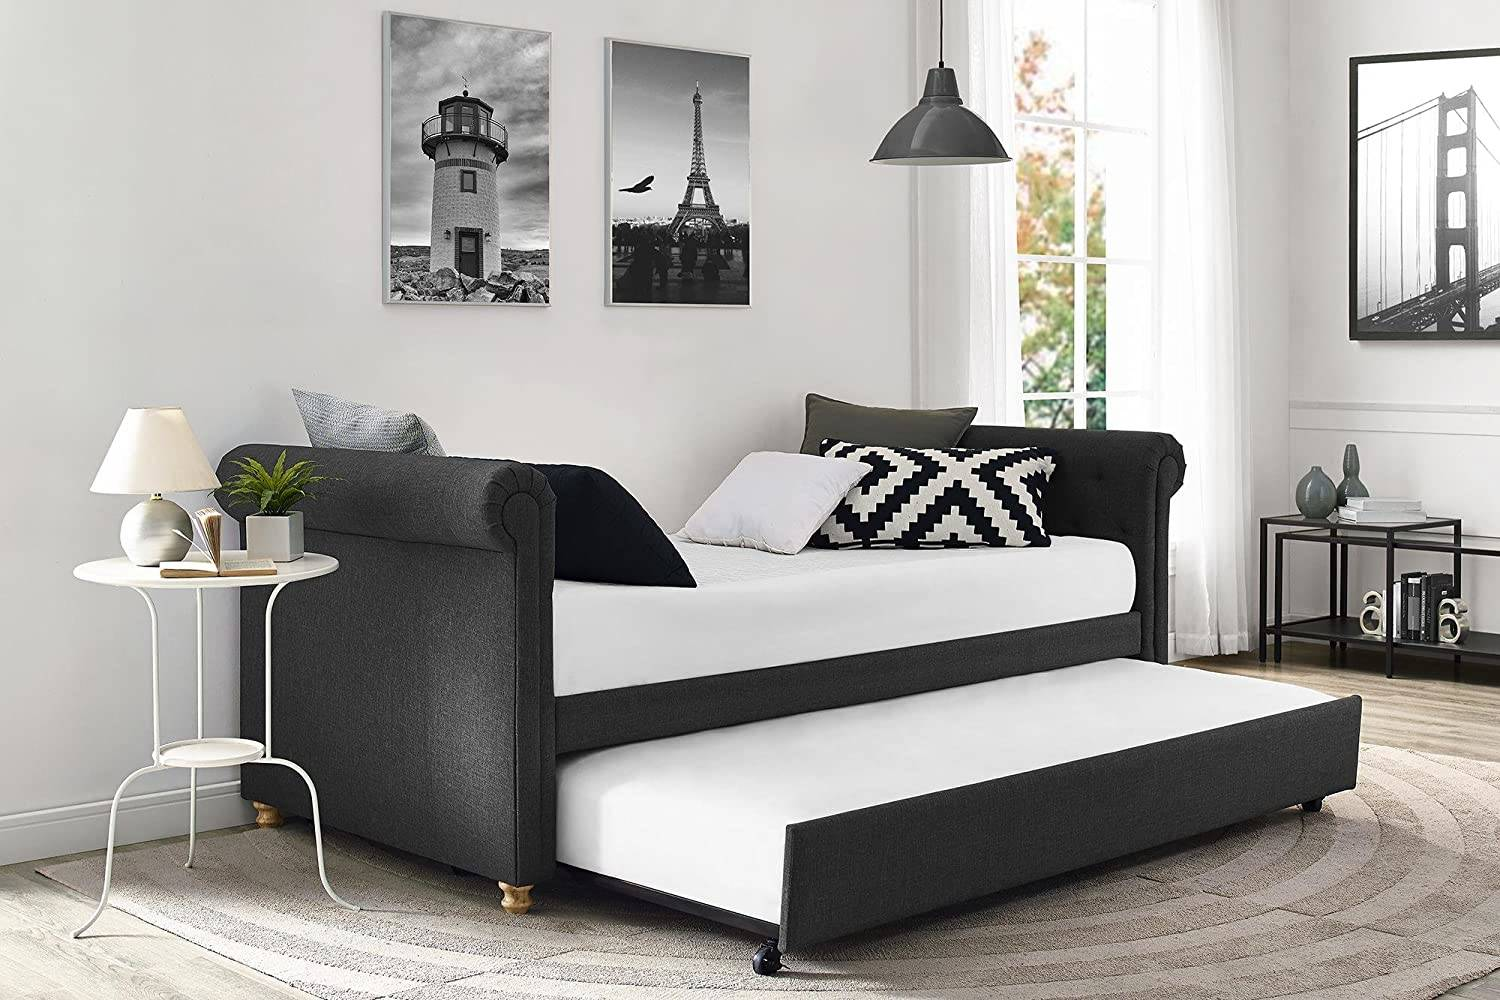 Best Trundle Beds The Sleep Judge